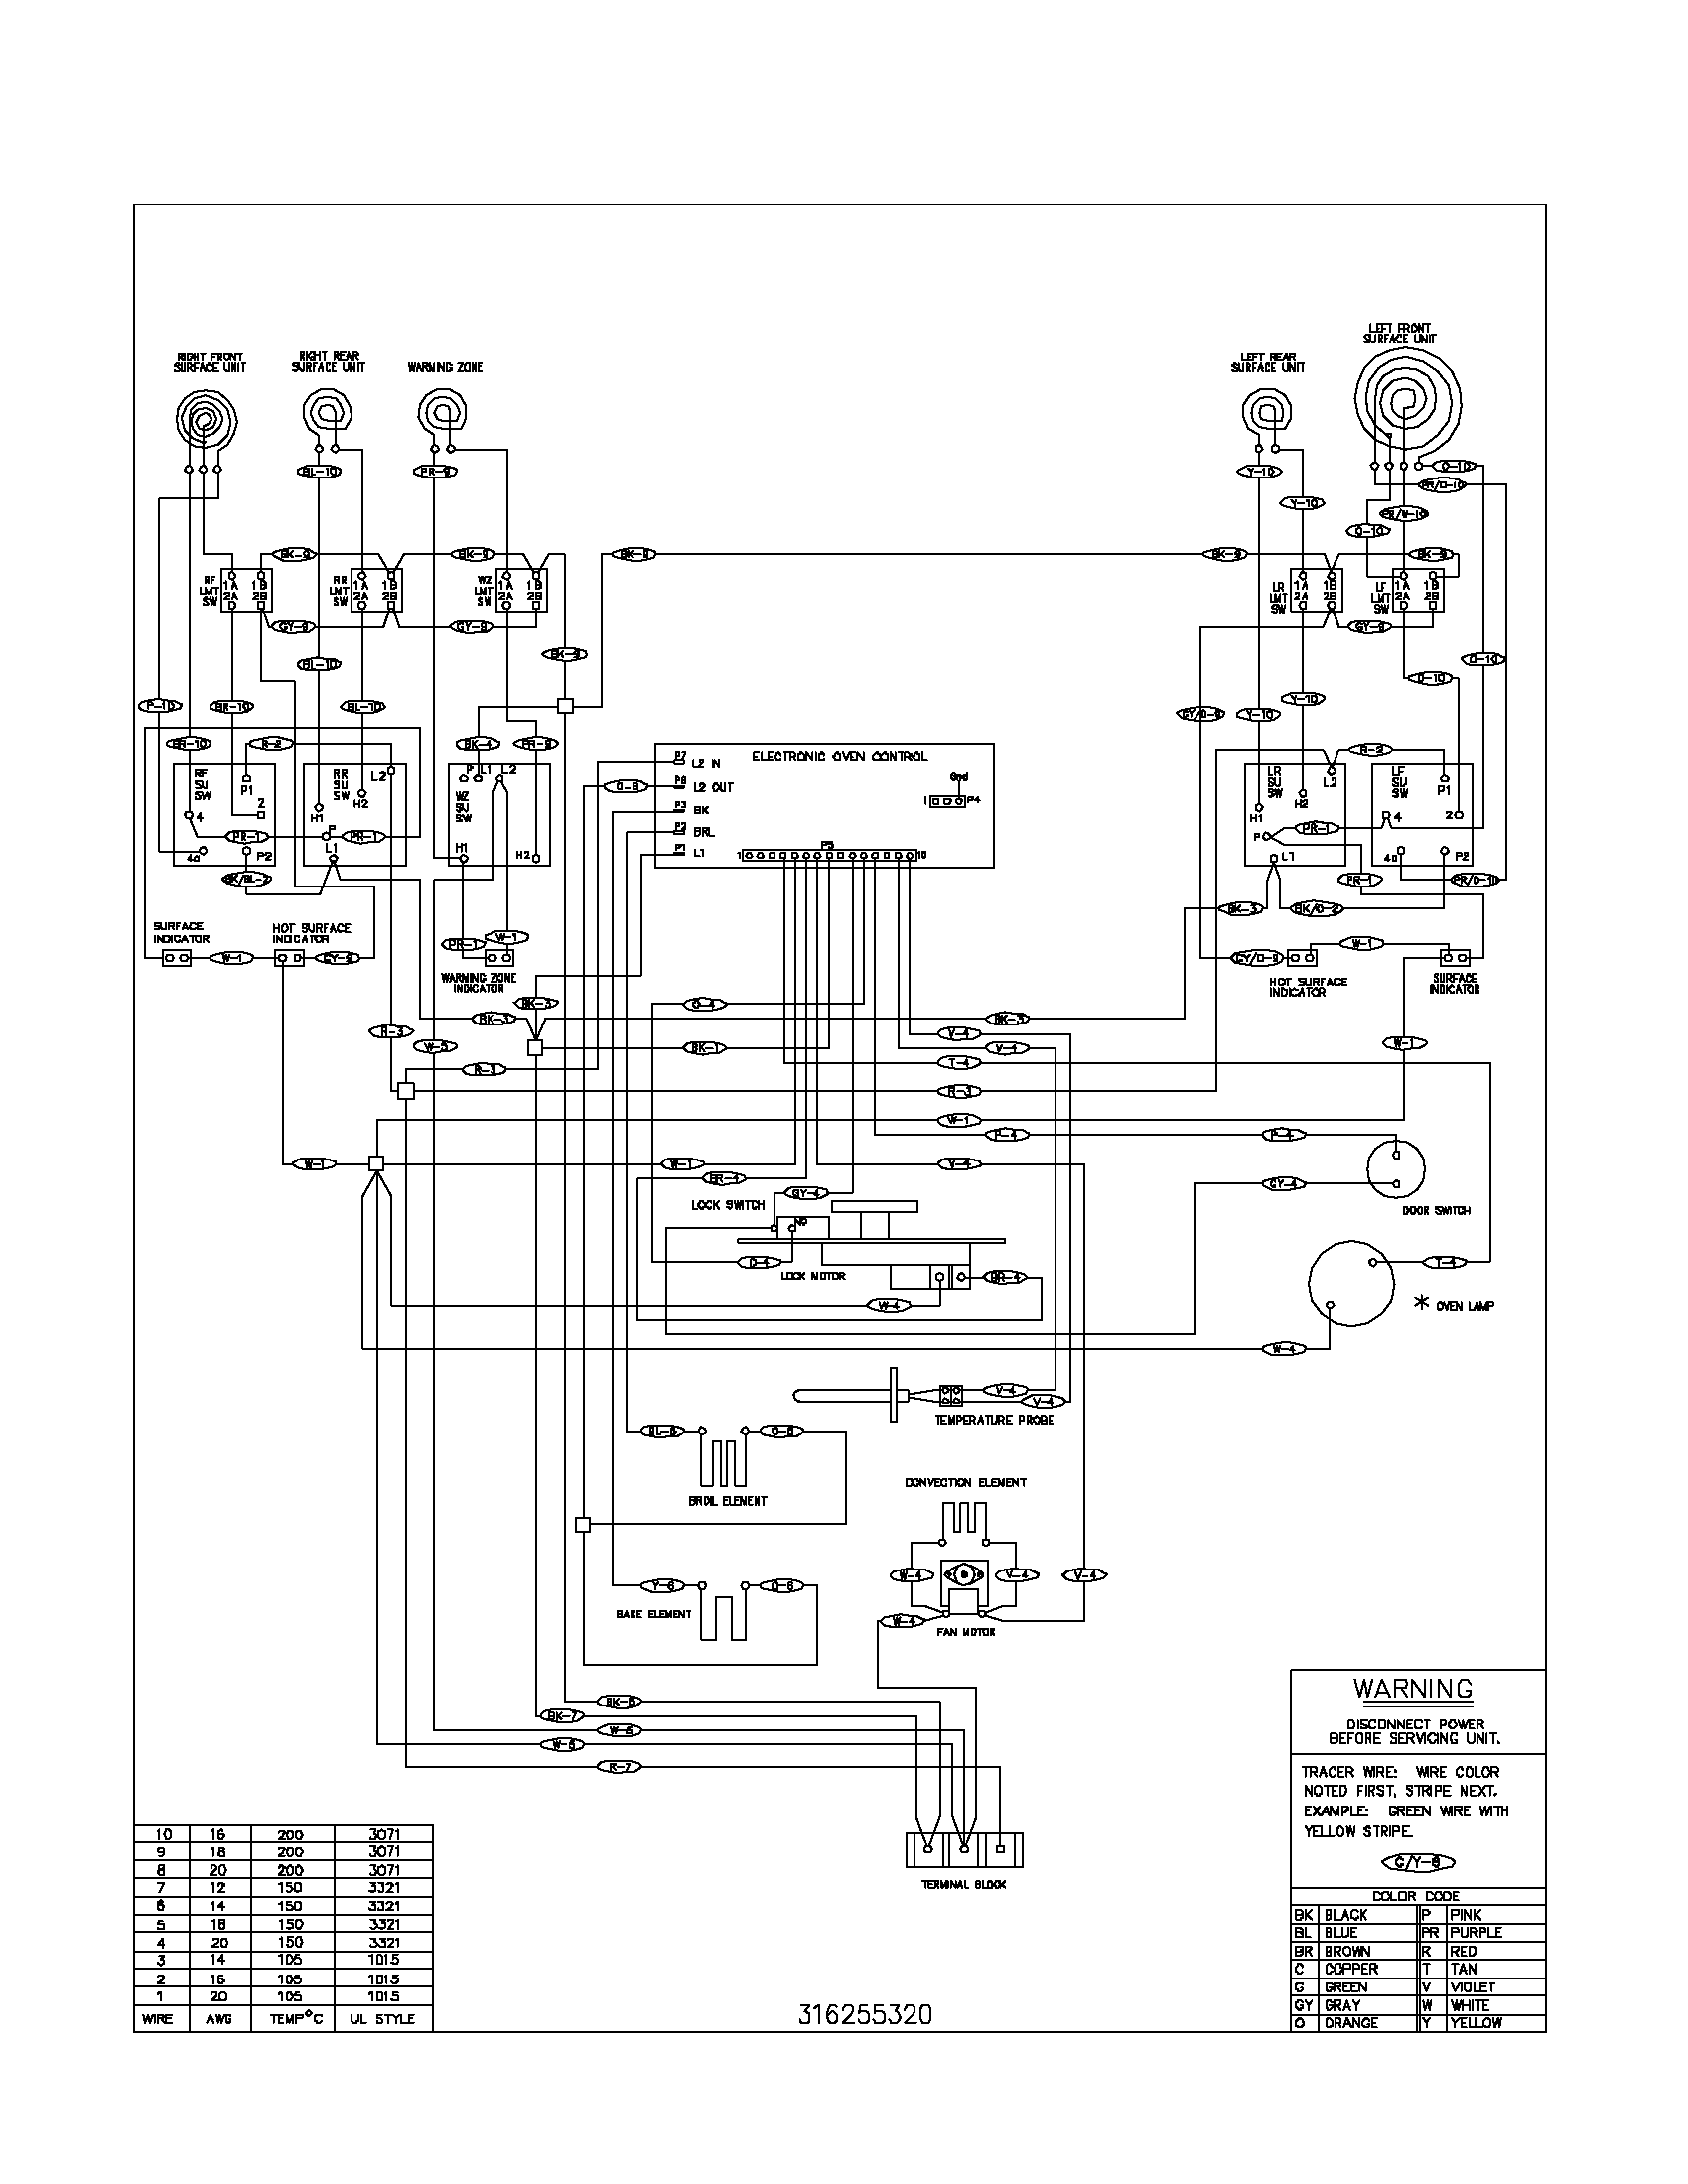 whirlpool gold ultimate care ii dryer wiring diagram romex wire 5t sprachentogo de schematics auto electrical rh kubota edu tiendadiversey com ar series oven